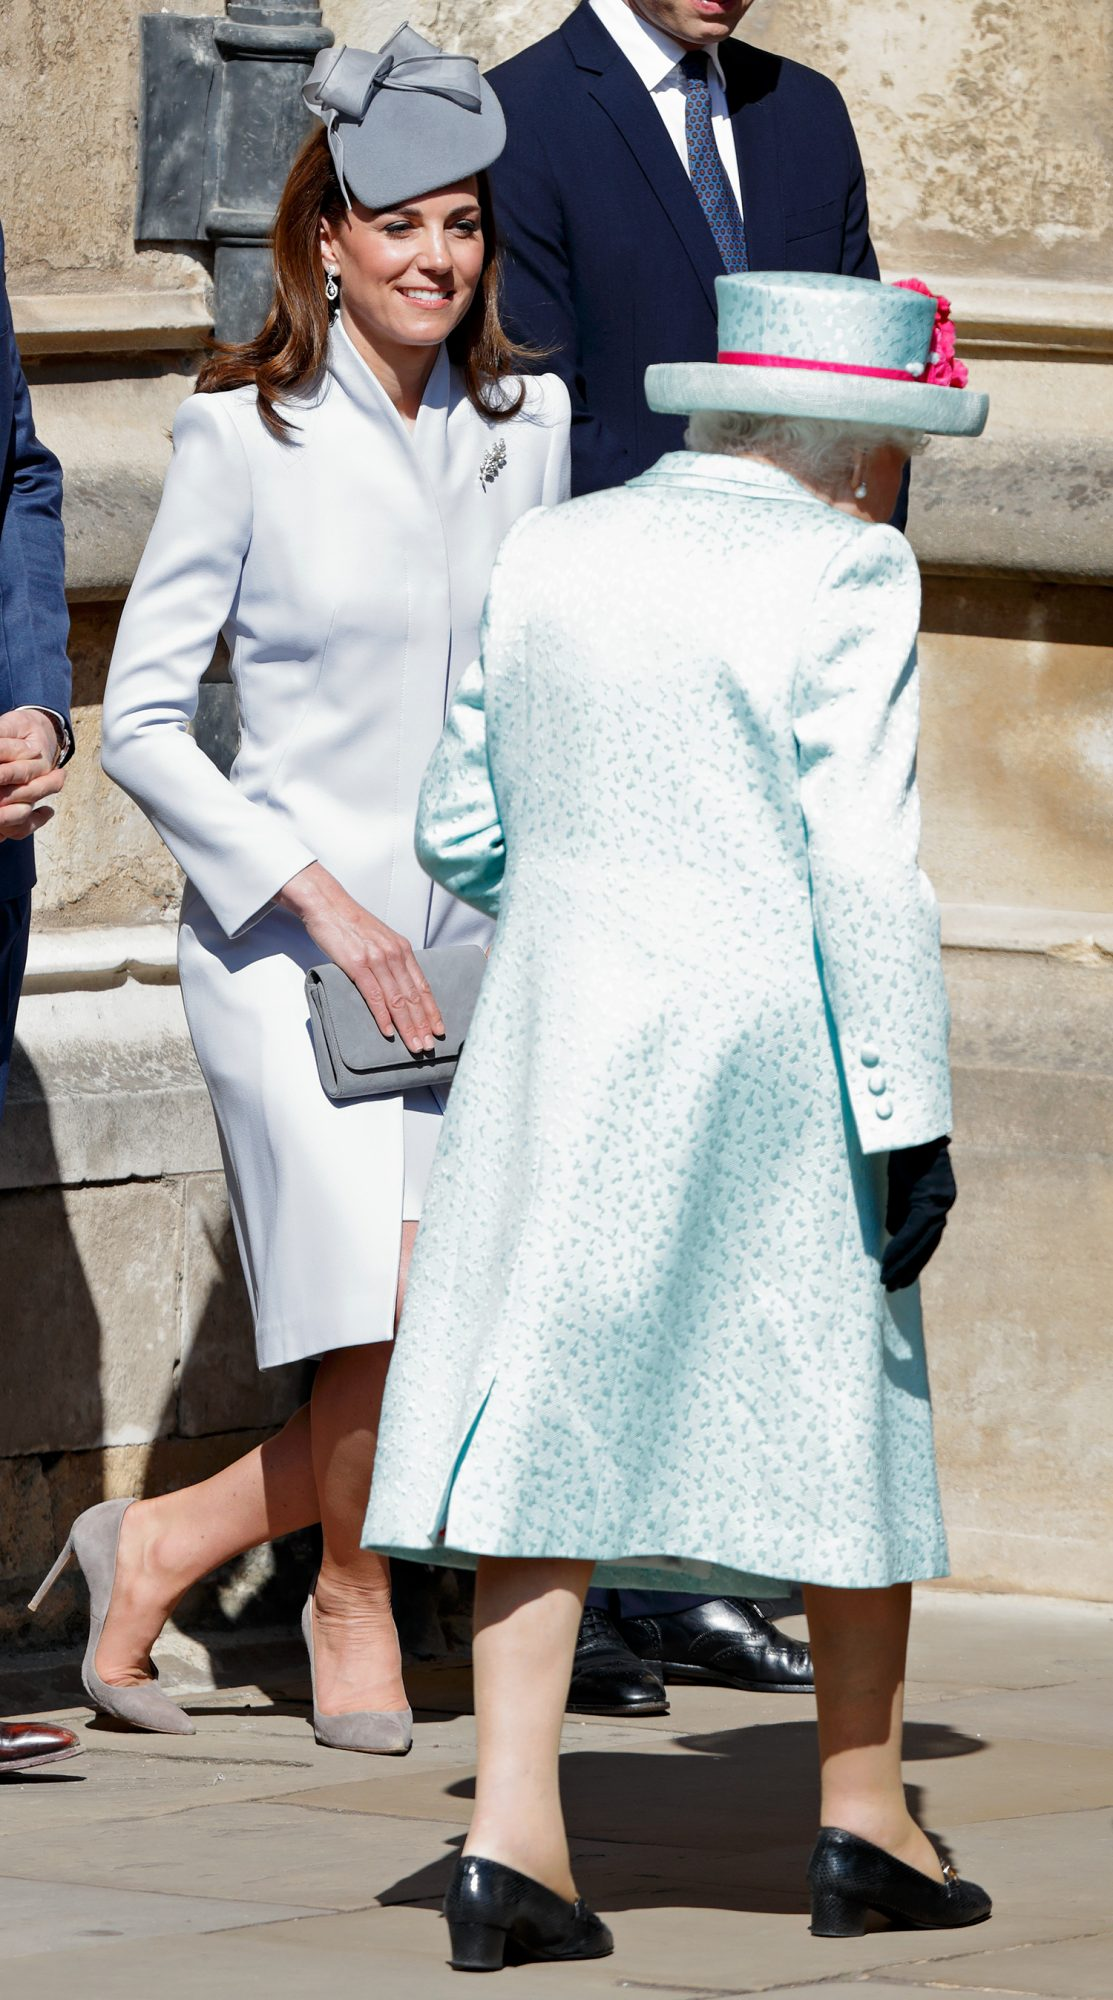 Catherine, Duchess of Cambridge curtsies to Queen Elizabeth II as they attend the traditional Easter Sunday church service at St George's Chapel, Windsor Castle on April 21, 2019 in Windsor